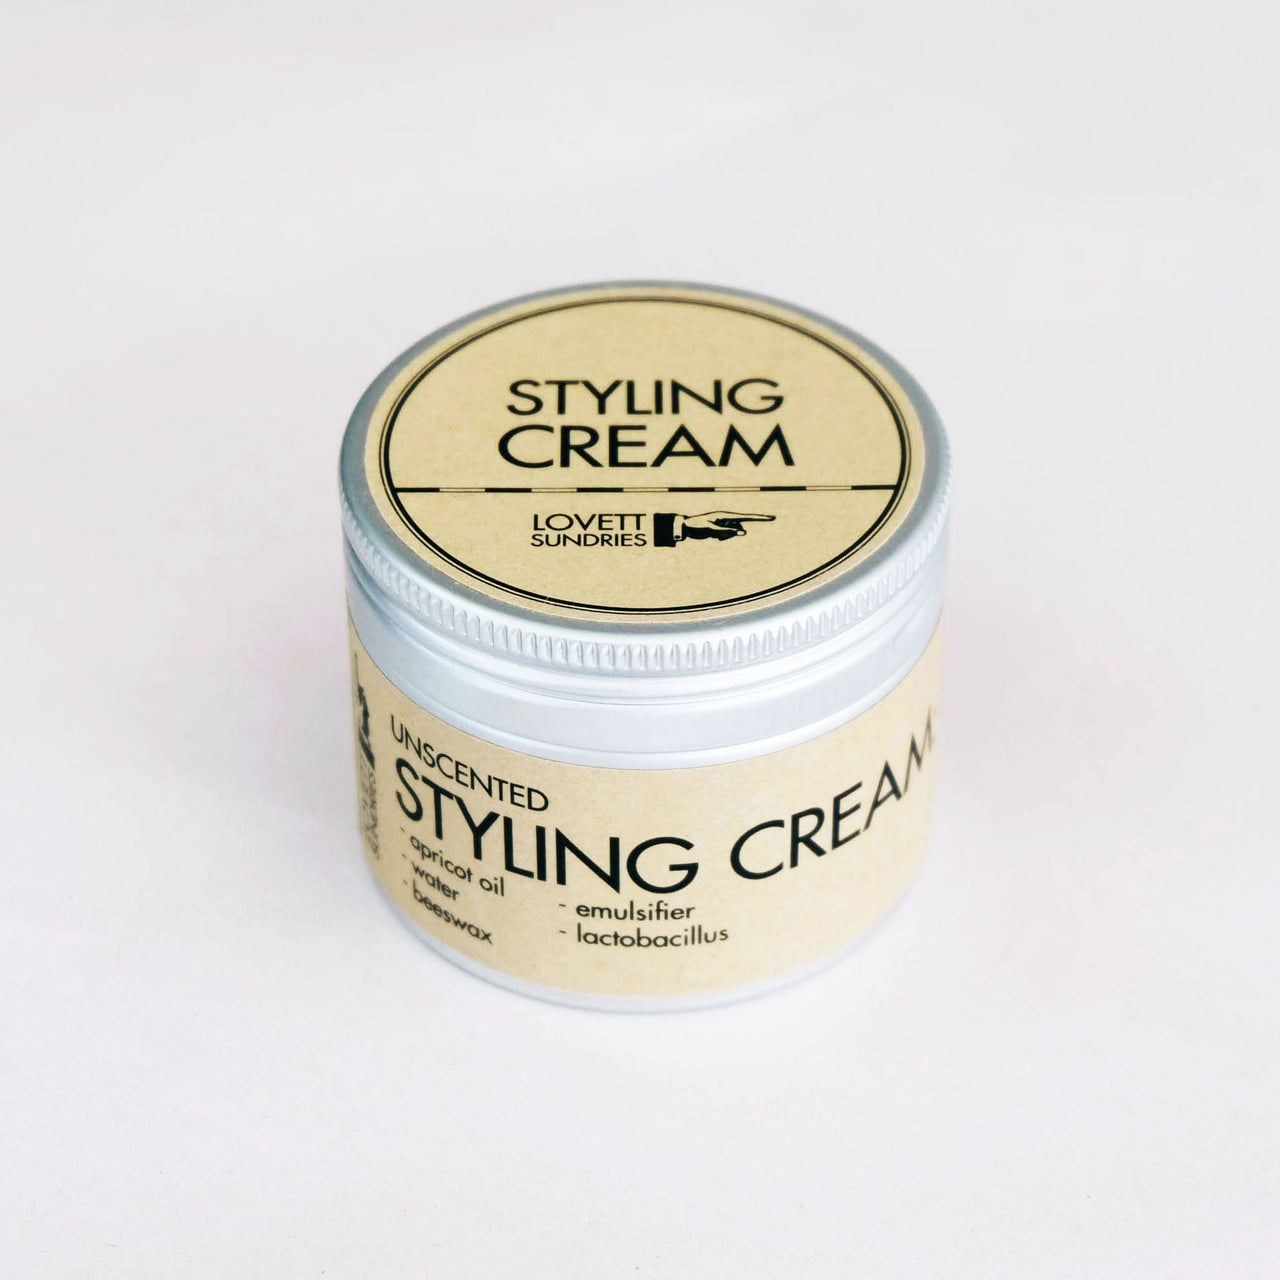 Styling Cream